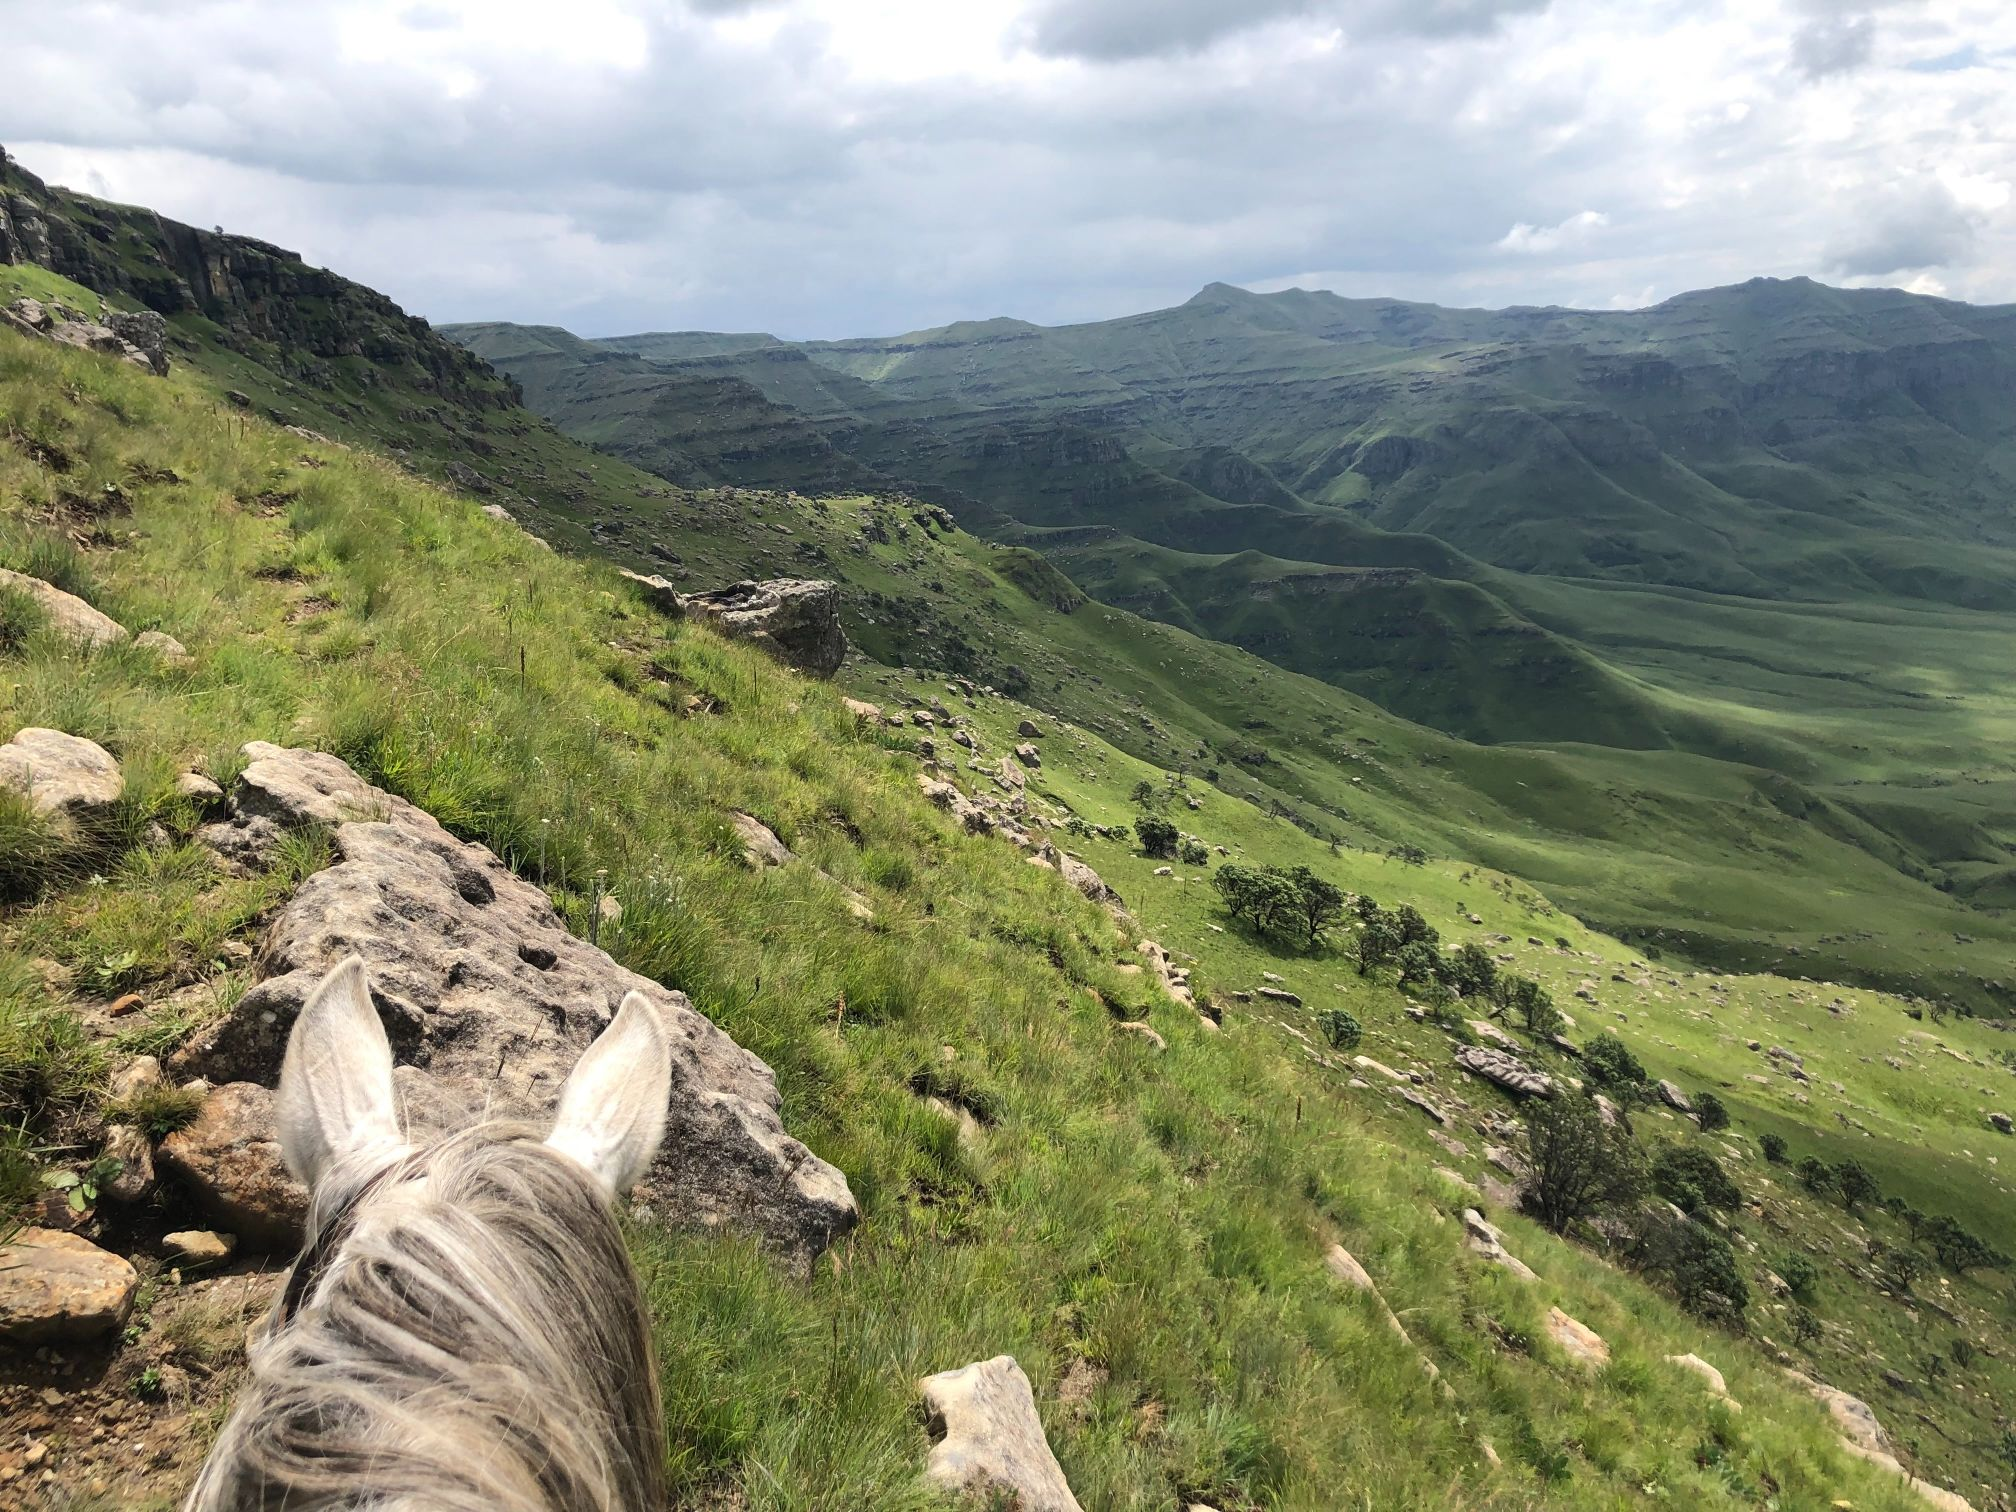 Horse riding in the Drakensberg South Africa